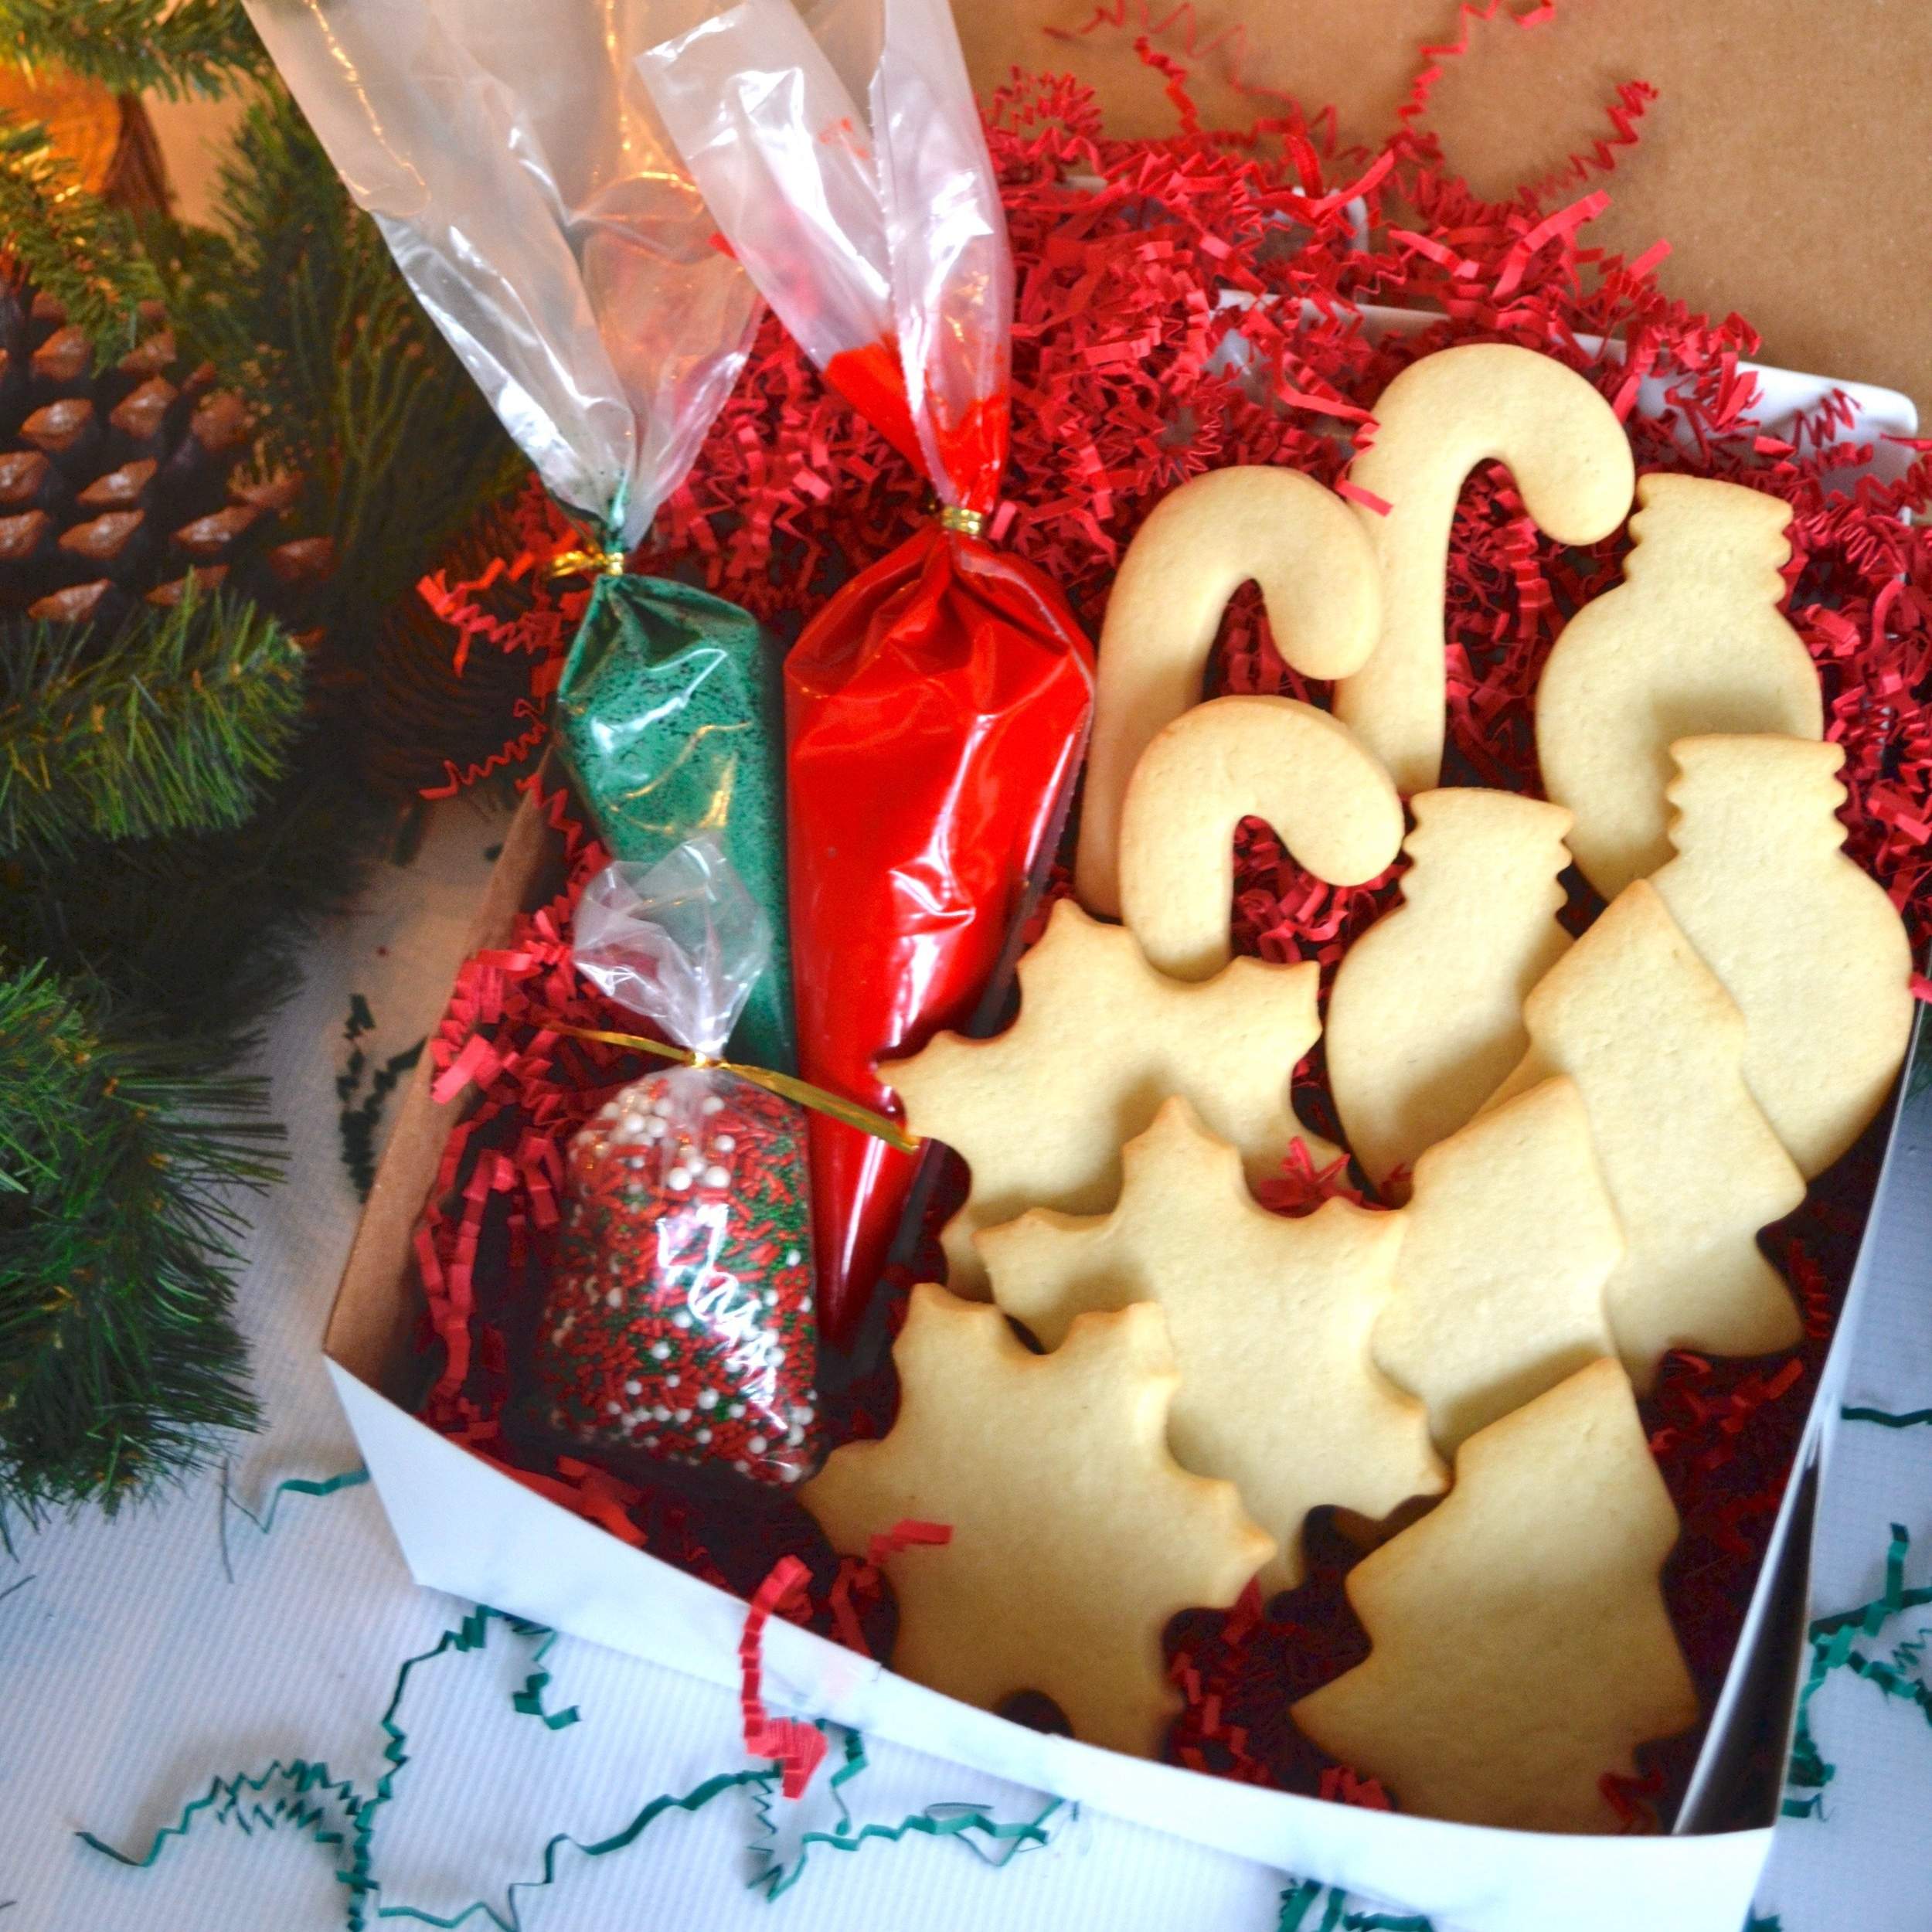 Cookie Decorating Kit   A dozen assorted cookies, icing and sprinkles.   $30